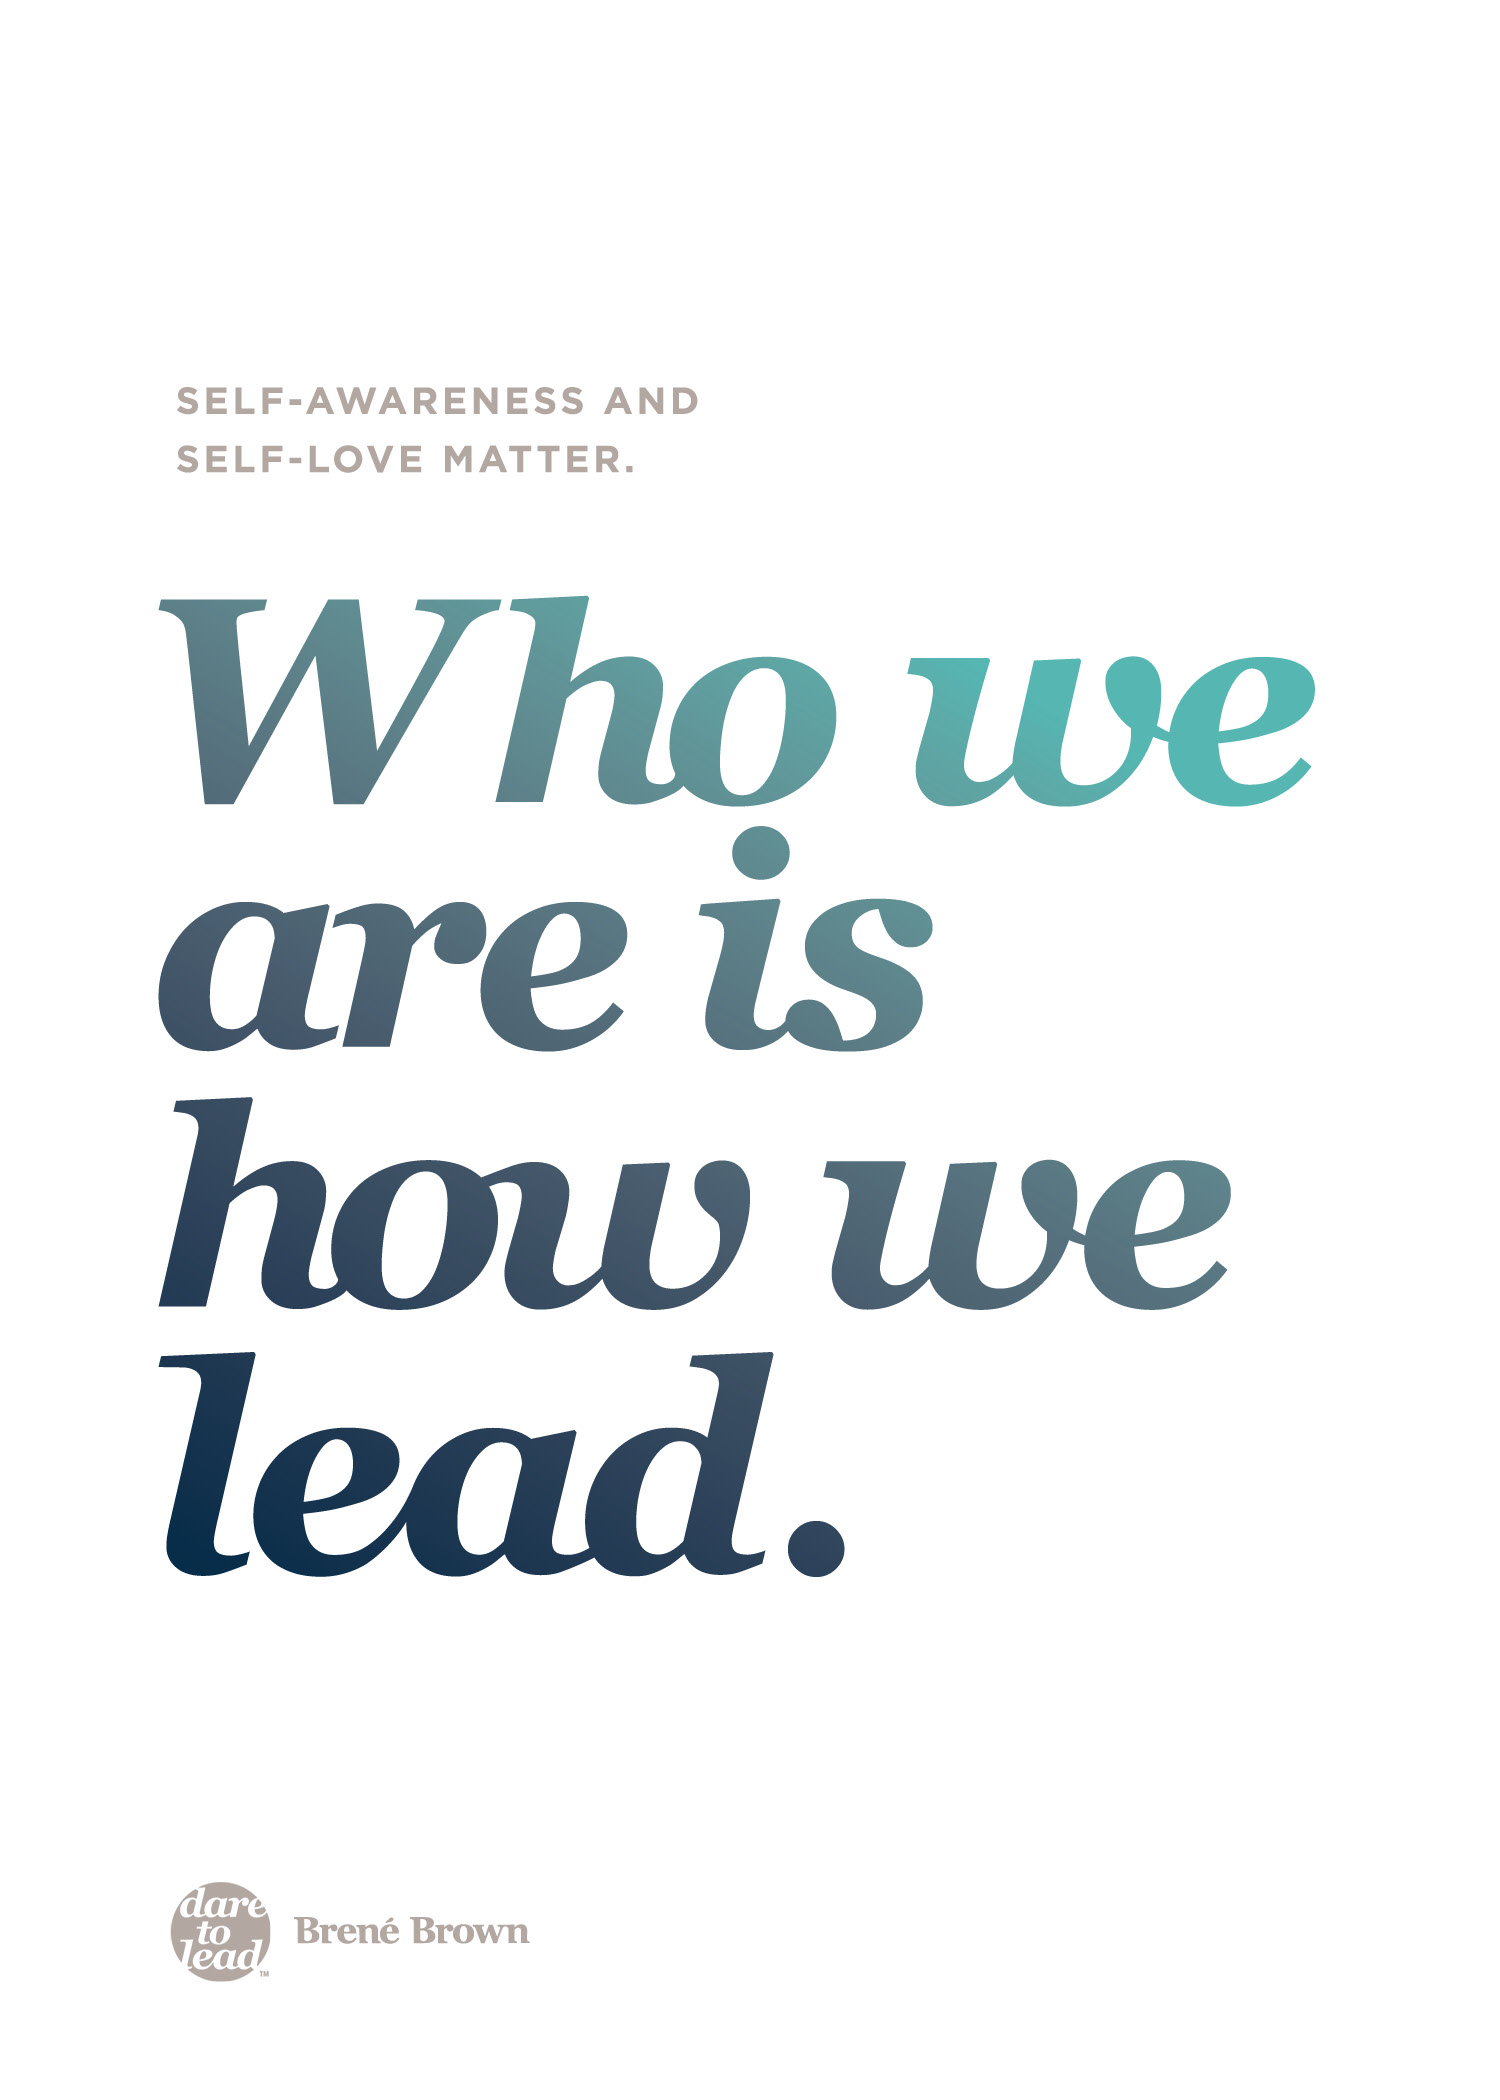 """Self-awareness and self-love matter. Who we are is how we lead."" - Brené Brown"